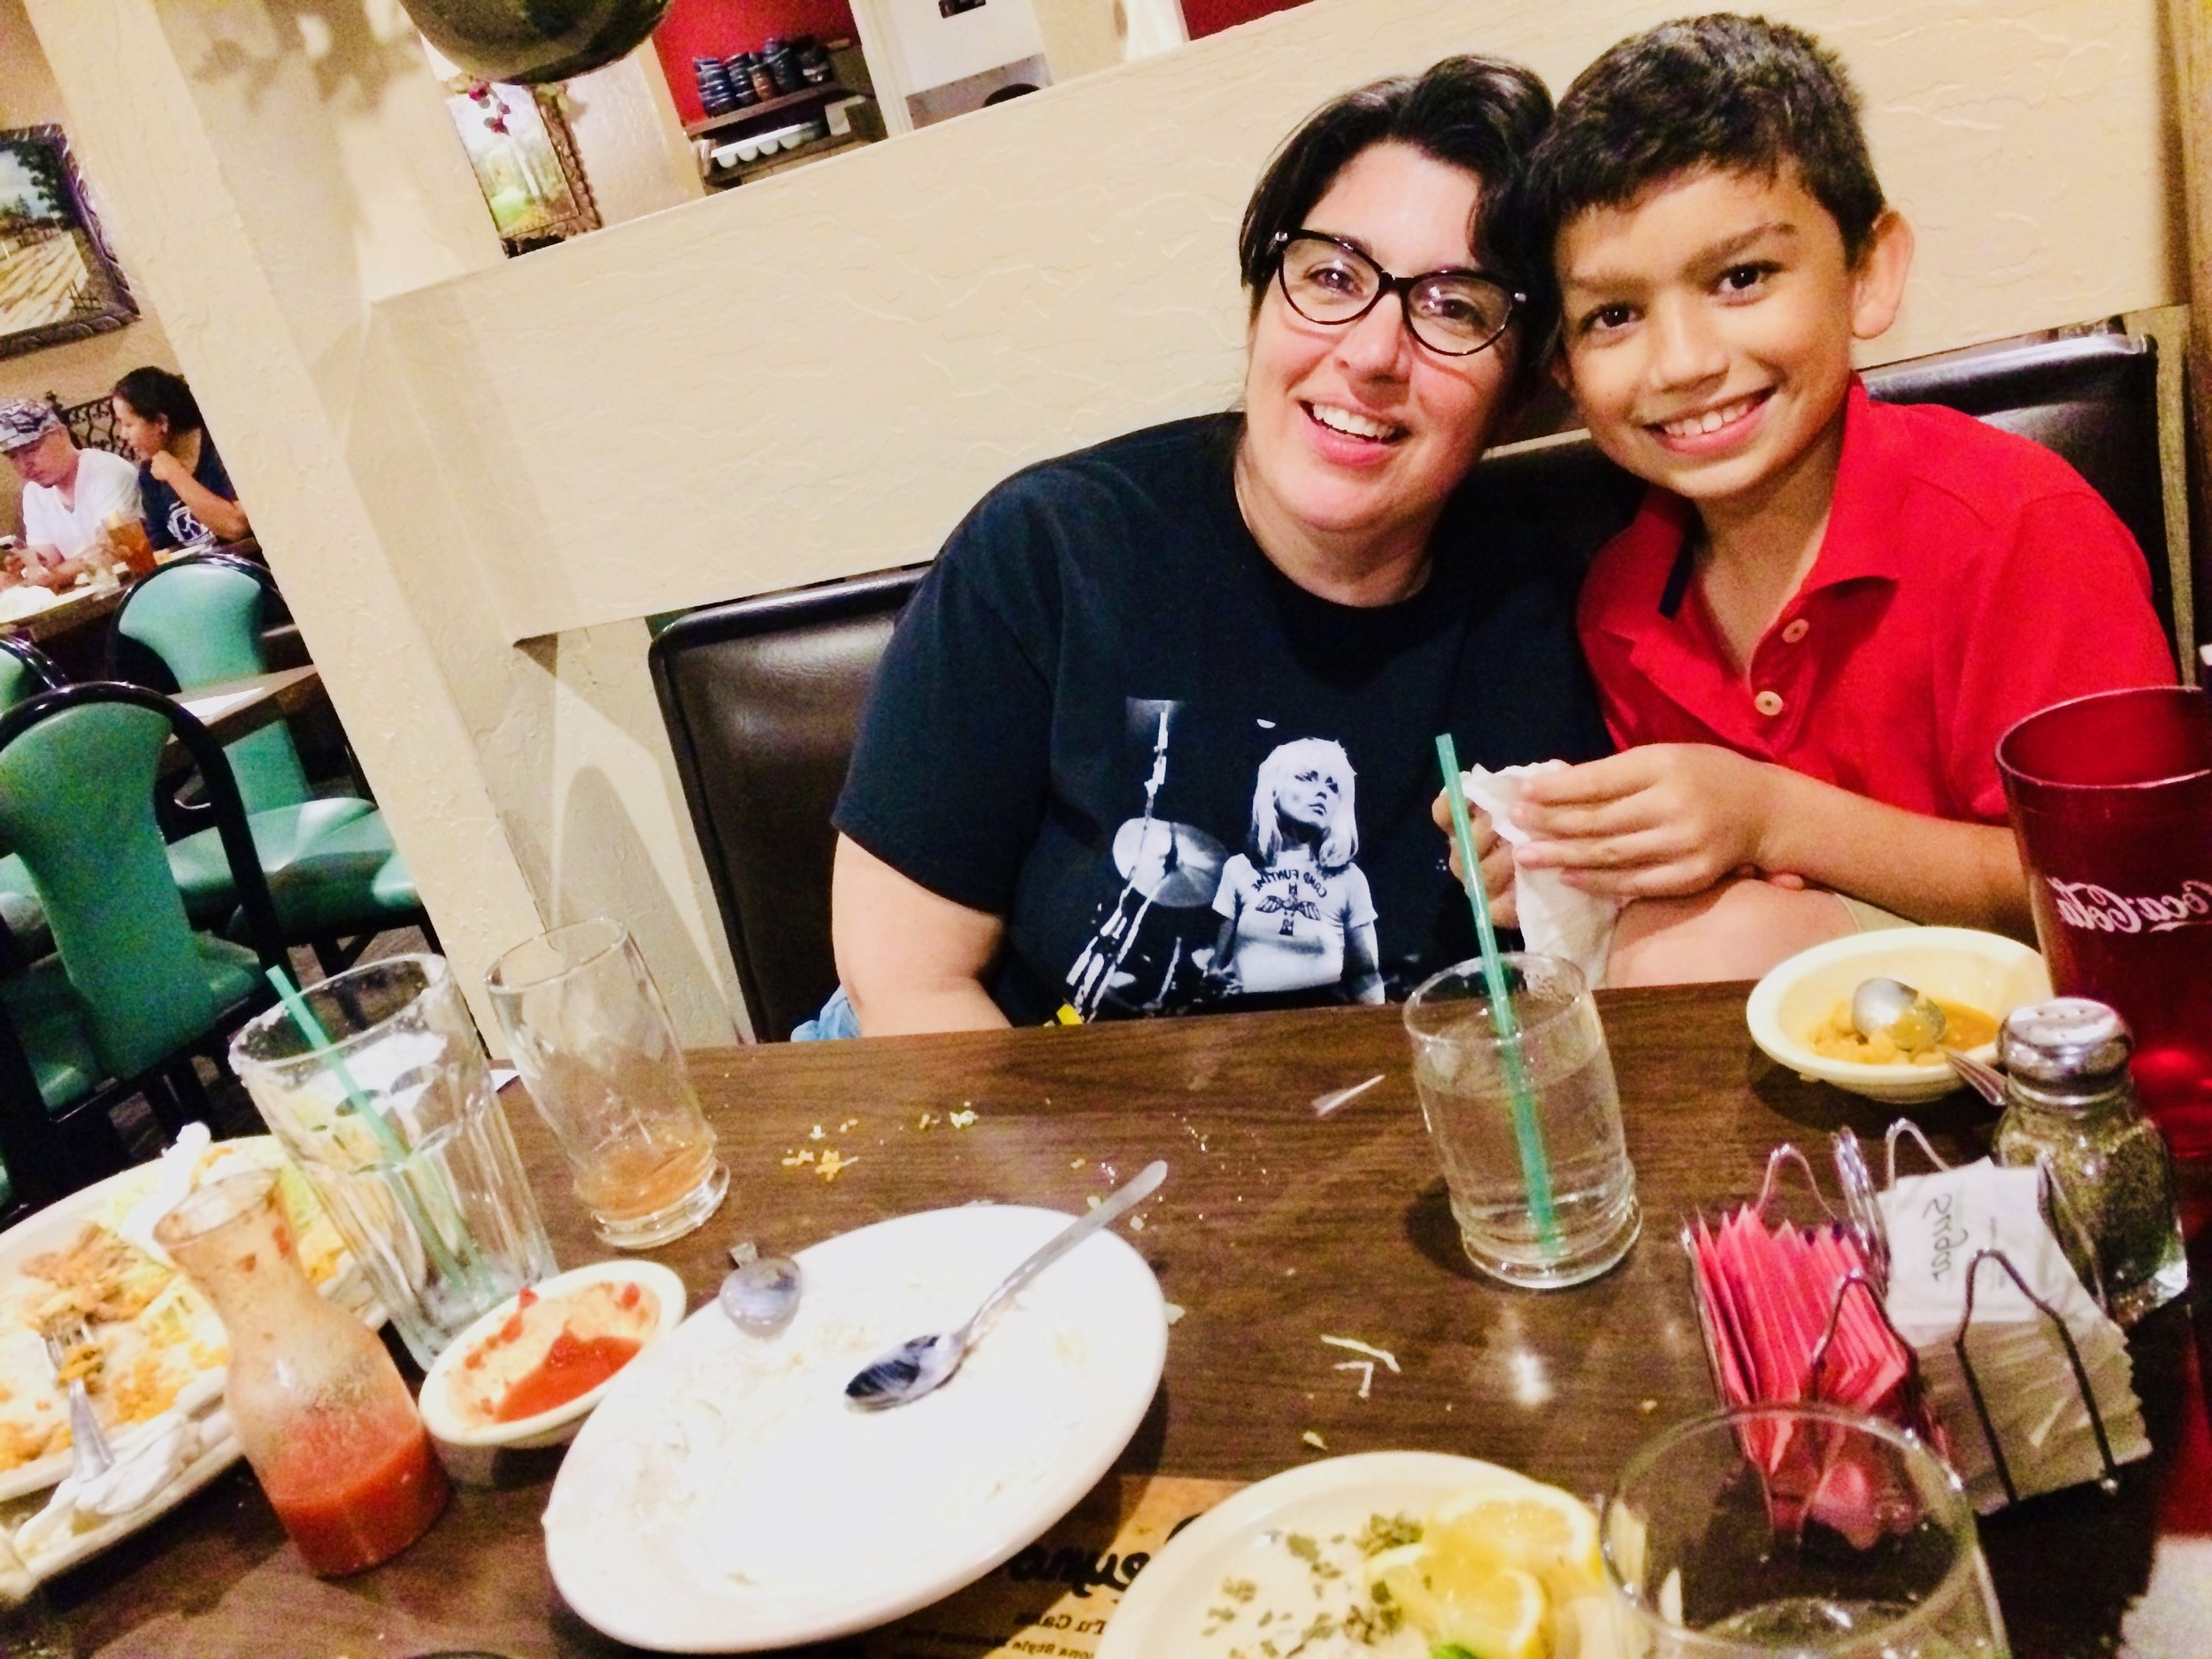 """ASU film instructor Michelle Martinez and her son Elian. Martinez read classics like """"Bless Me Ultima"""" and """"The House on Mango Street"""" in college. These stories inspired her lifelong exploration into the Latino narrative - ultimately leading her to teach Oscar Acosta's books."""